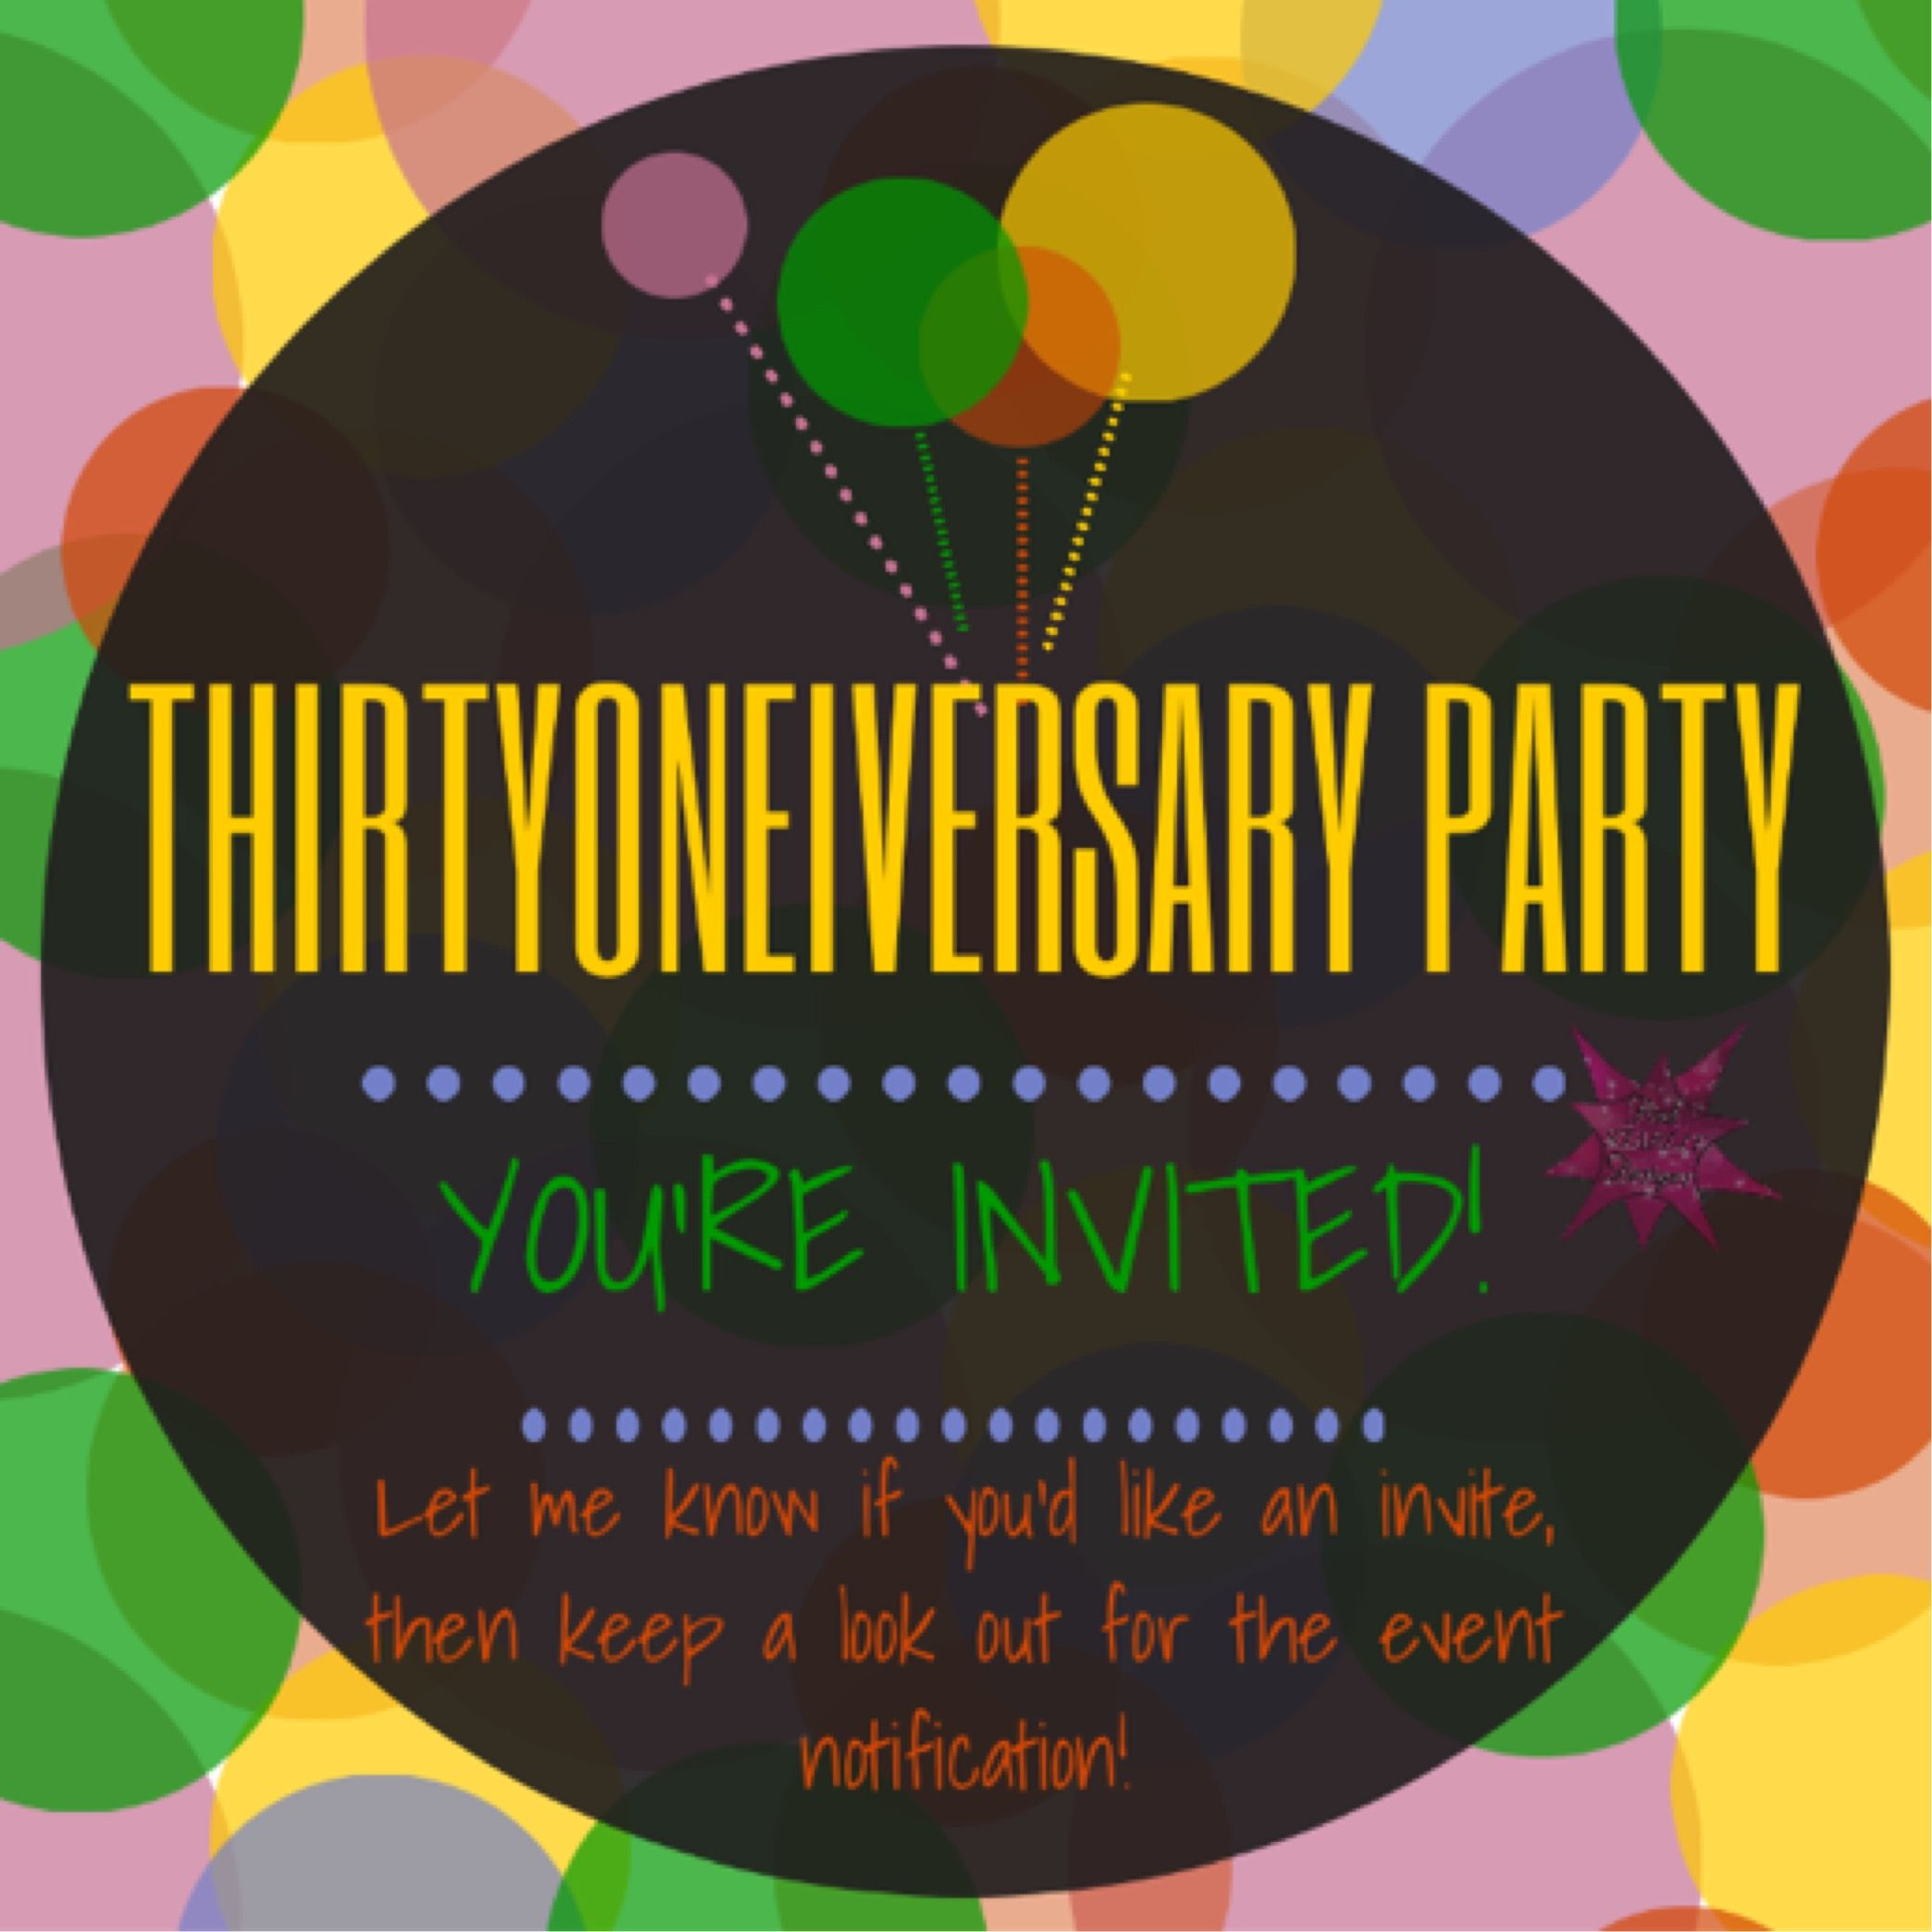 Thirtyoneiversary Party Invite Graphic For Vip Facebook Group